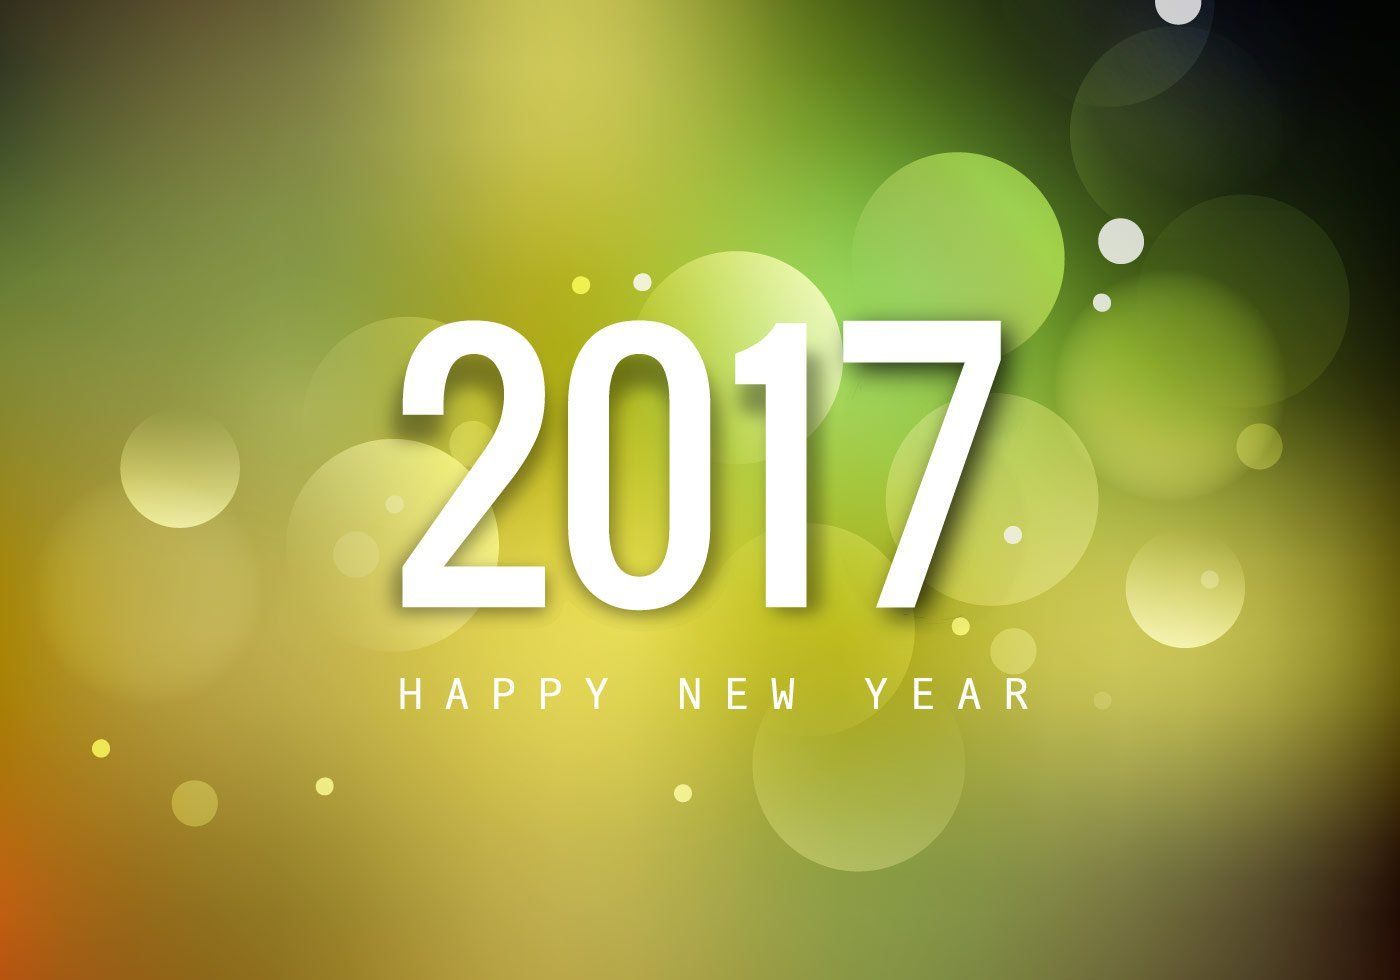 Happy New Year Greeting Cards 2017 New Year 2017 Hd Images Wish